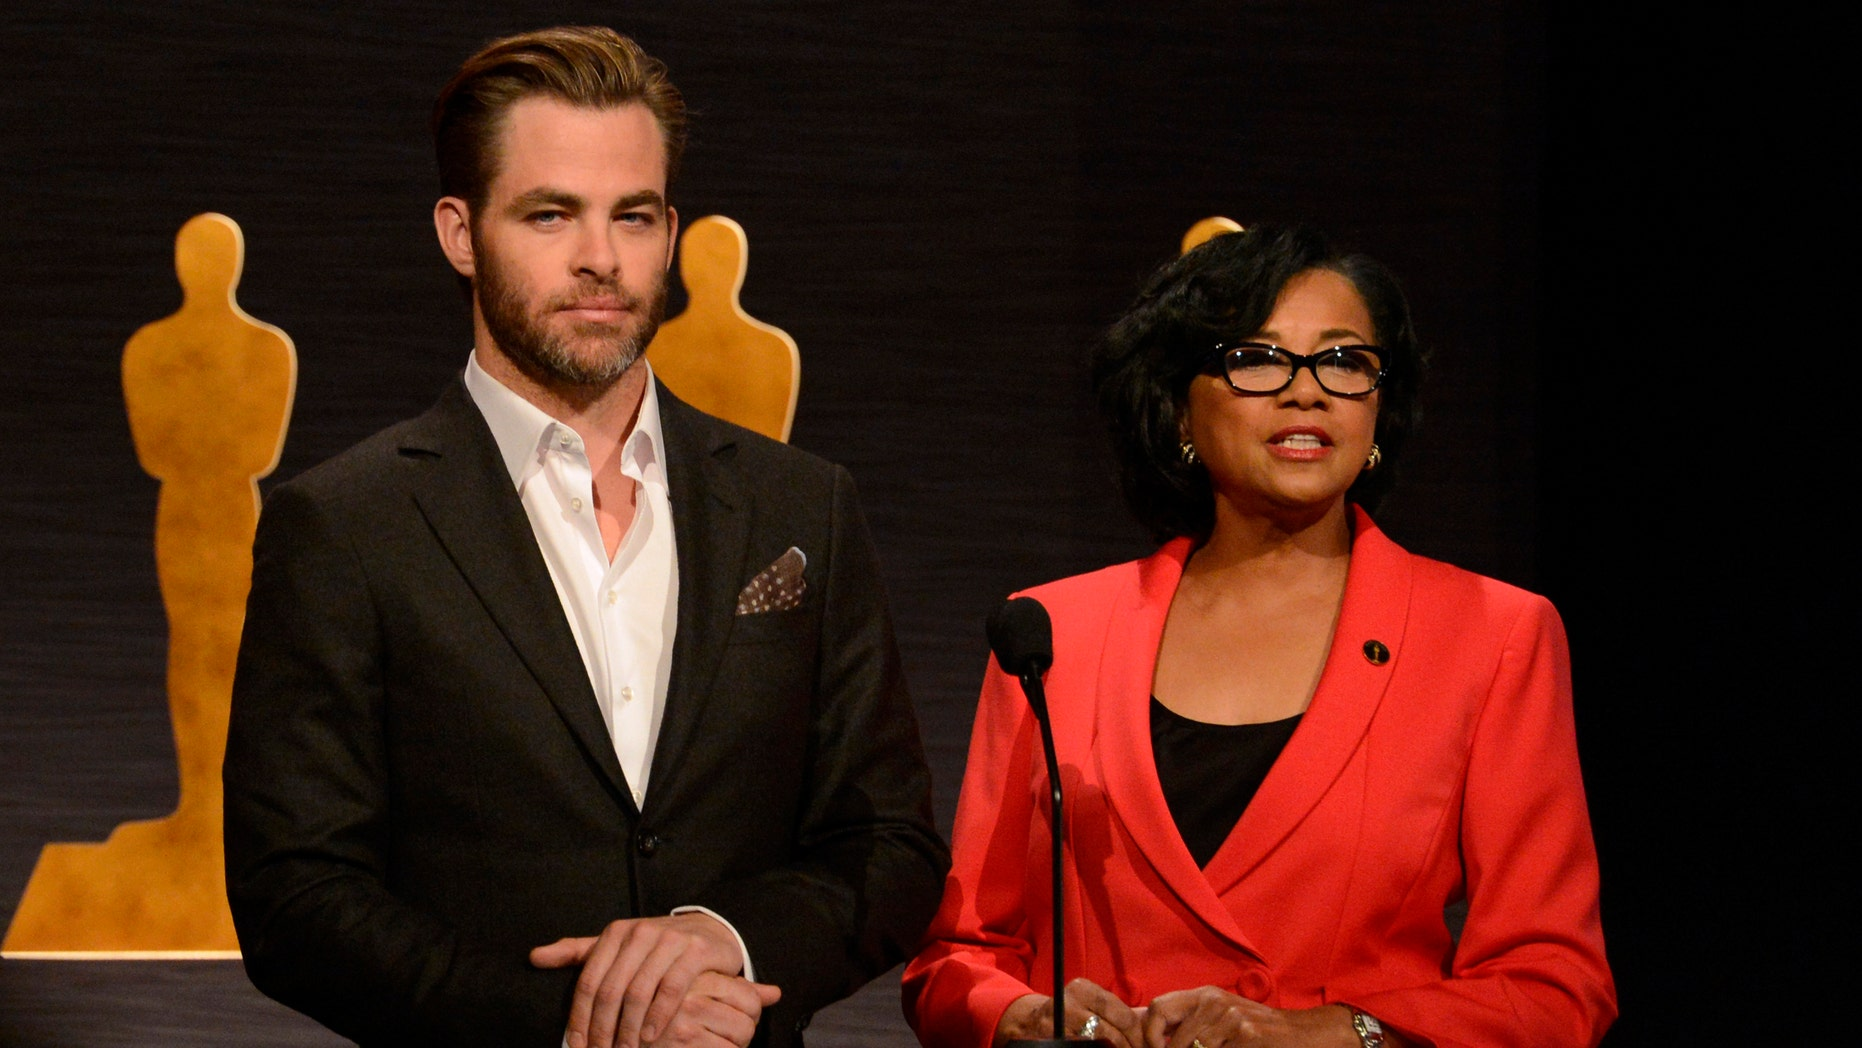 Actor Chris Pine (L) and Academy of Motion Picture Arts and Sciences President Cheryl Boone Isaacs (R) announce the nominees for Best Picture during the nominations announcement for the 87th Academy Awards in Beverly Hills, California January 15, 2015.  REUTERS/Phil McCarten  (UNITED STATES - Tags: ENTERTAINMENT) - RTR4LJLP